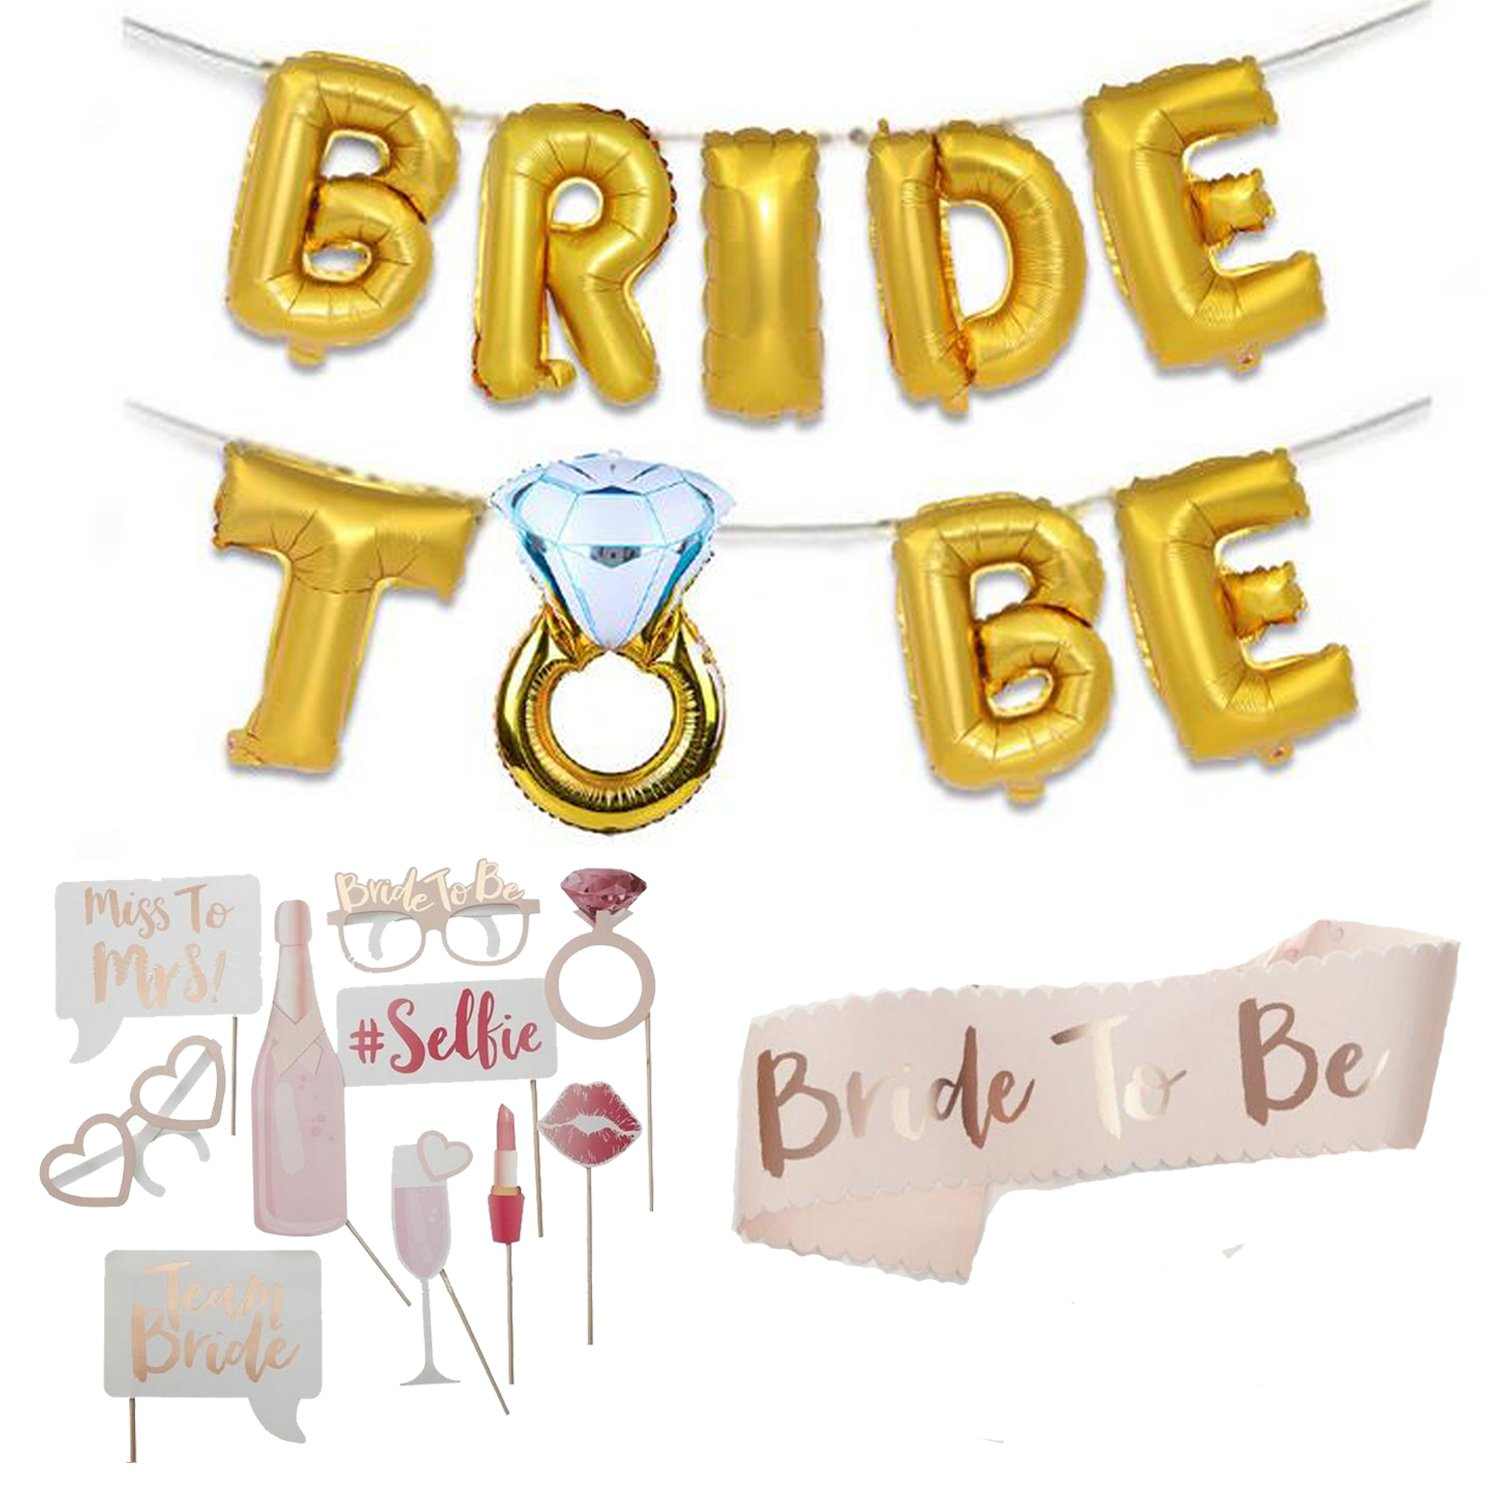 64ca81221f70f Bridal Shower Decorations Kit - Bride to Be Sash, 16 inch Foil ...